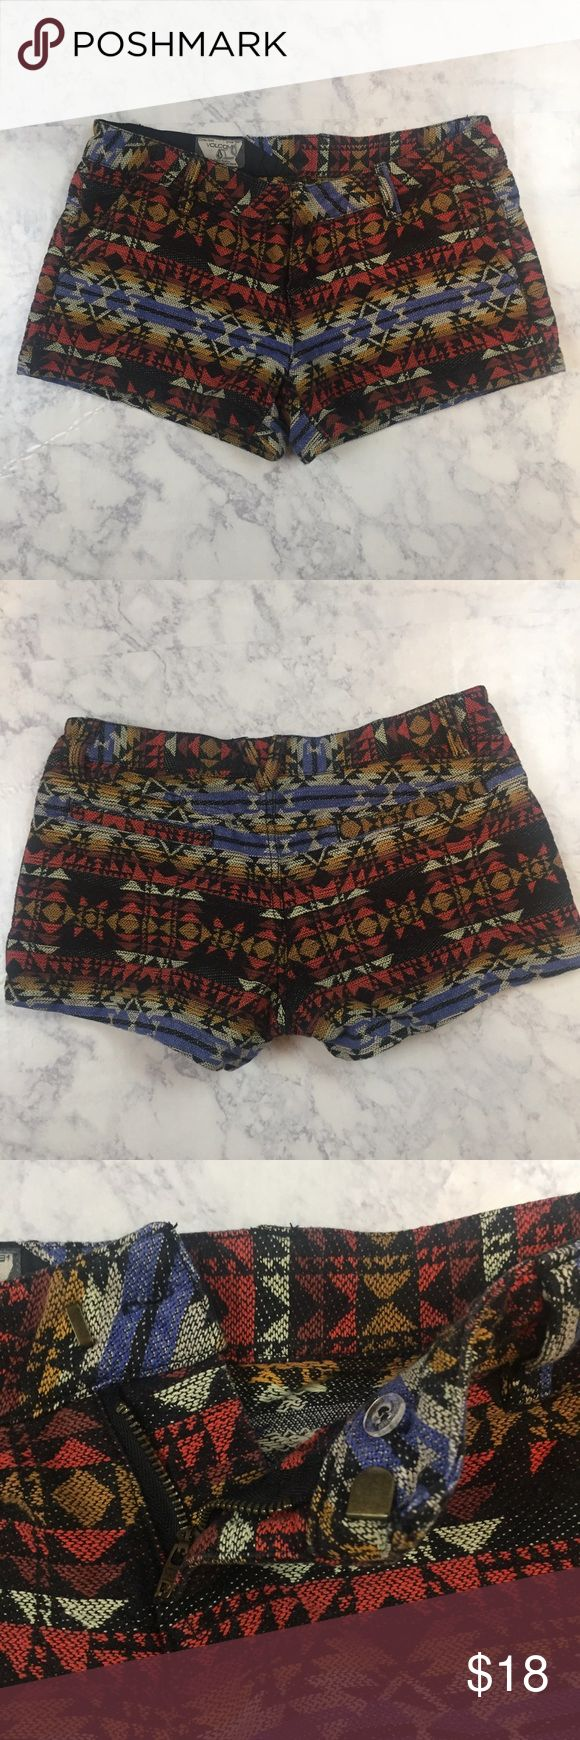 "Volcom Aztec Print Shorts Size 3 Super cute and trendy Shorts, great condition.  Size 3 Length 10"" Waist 15""  Laid flat, unstretched Volcom Shorts"